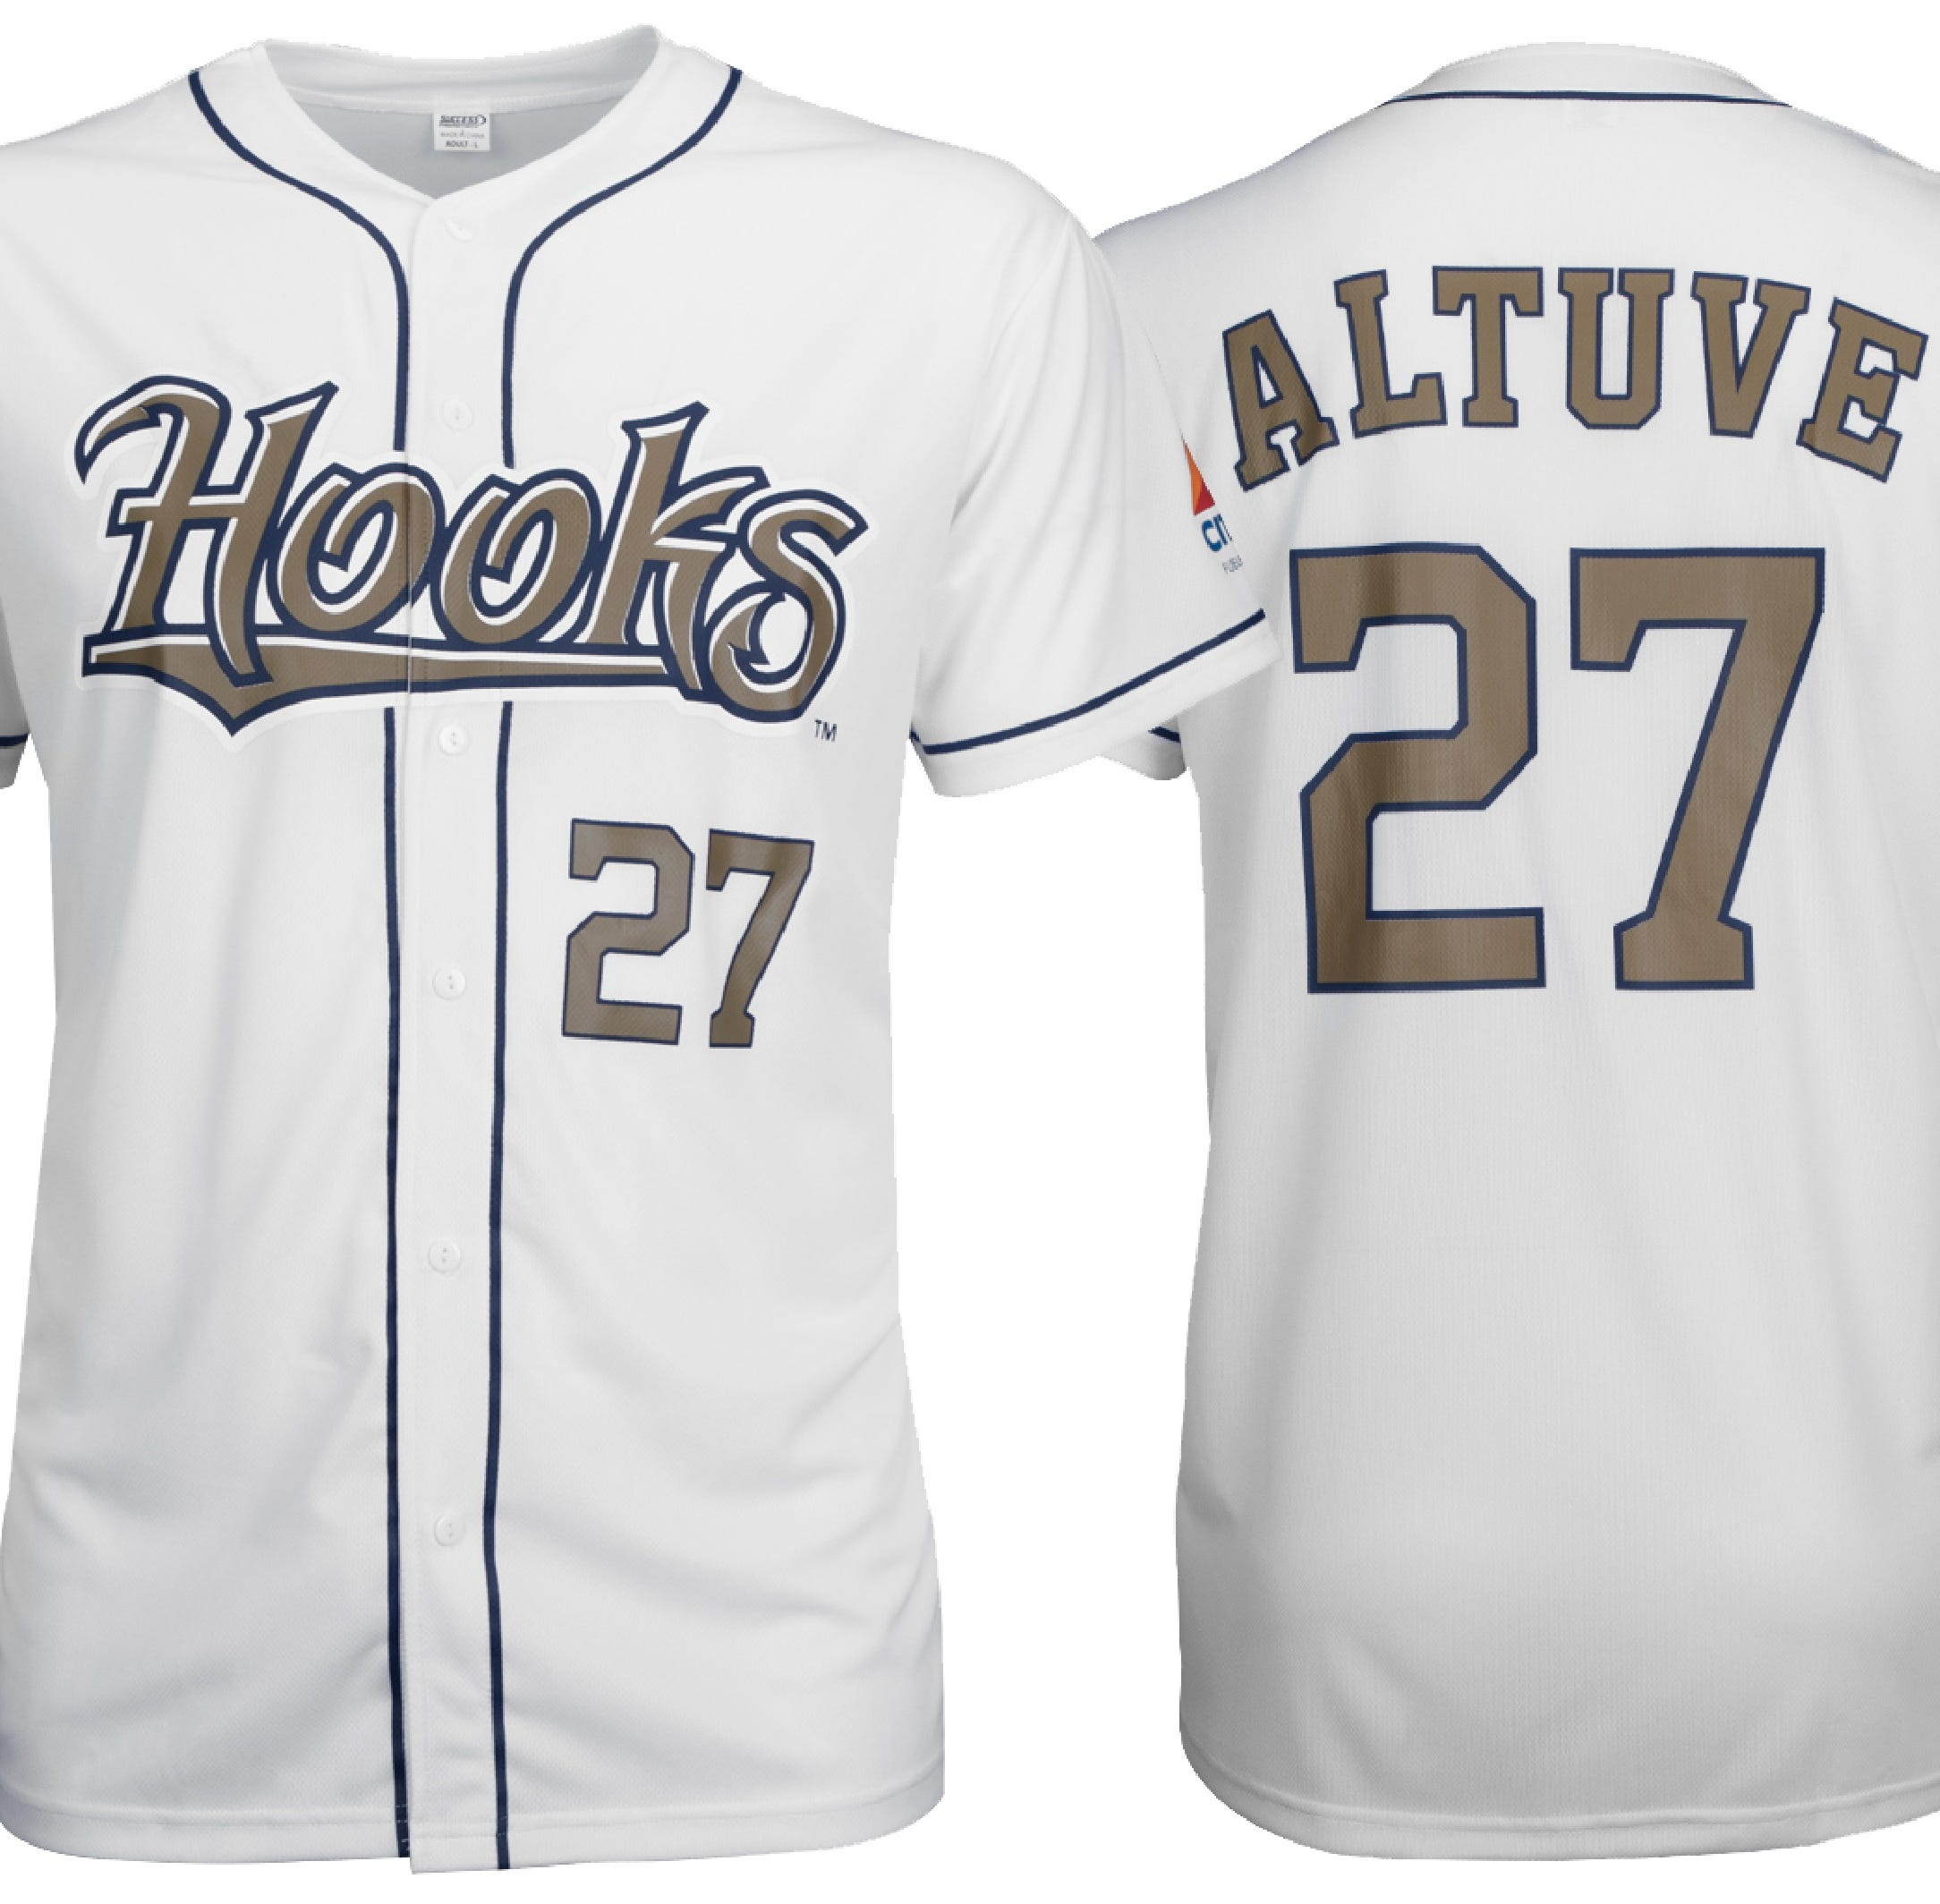 Hooks announce Jose Altuve jersey giveaway as playoff tickets go on sale